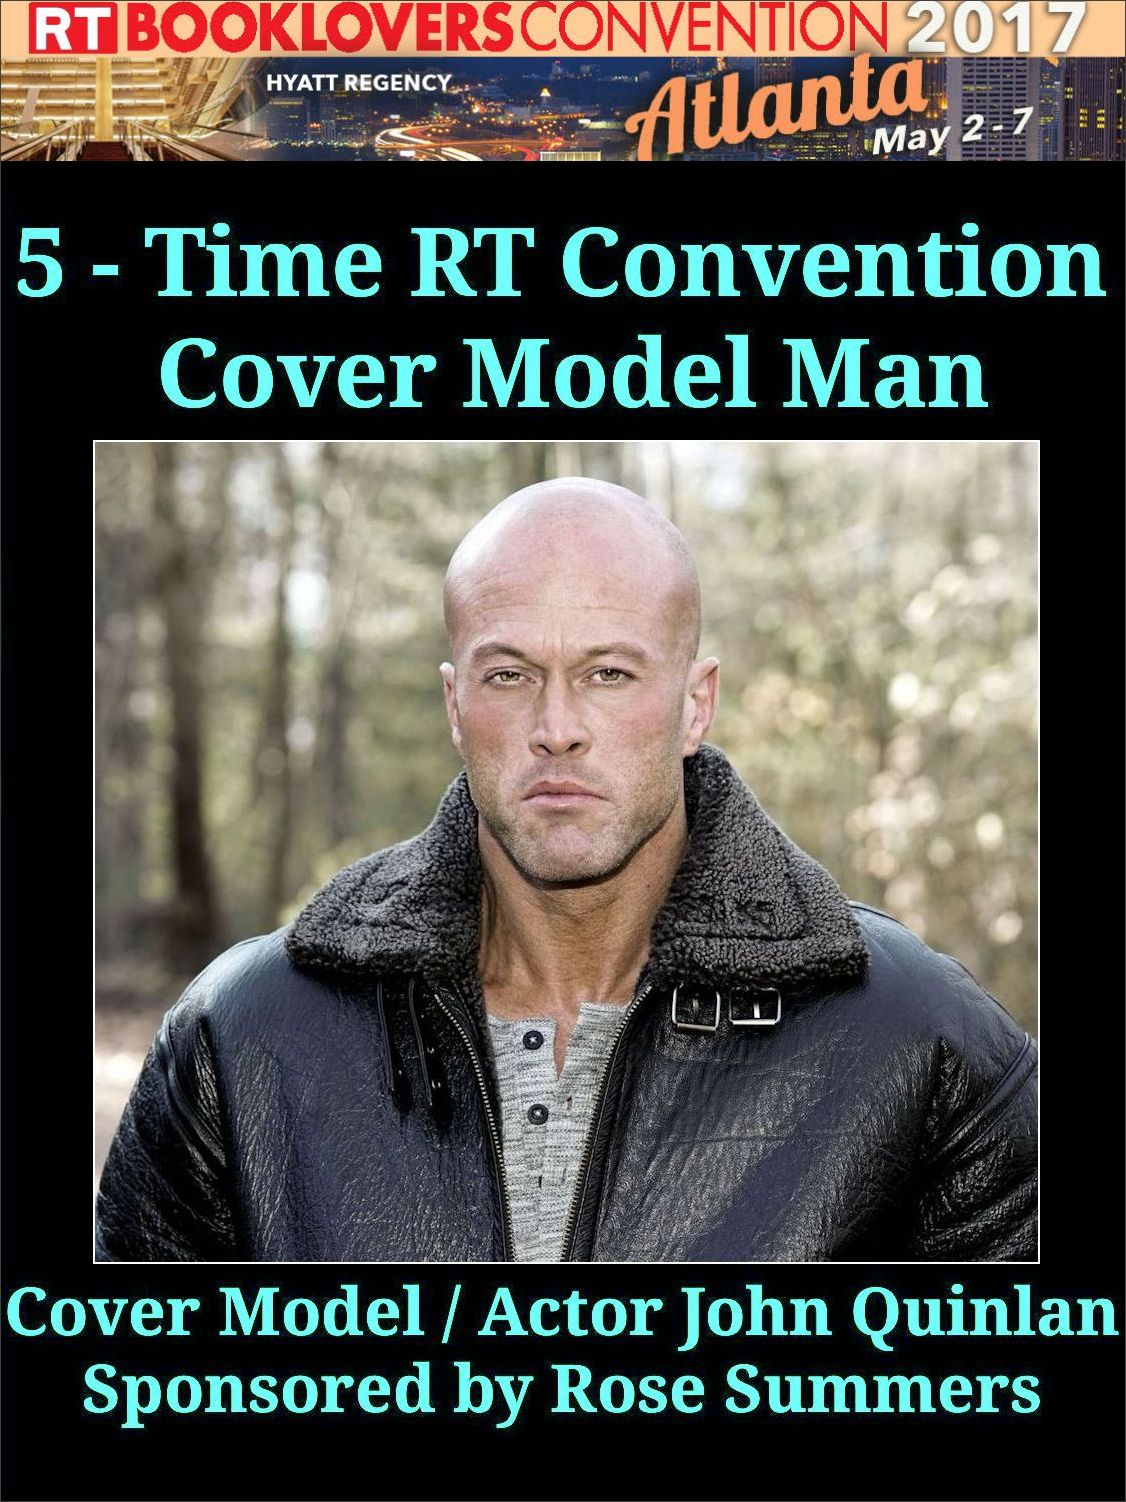 2017 RT Convention Atlanta Featured Cover Model & Actor John Joseph Quinlan by Rose #JohnQuinlan